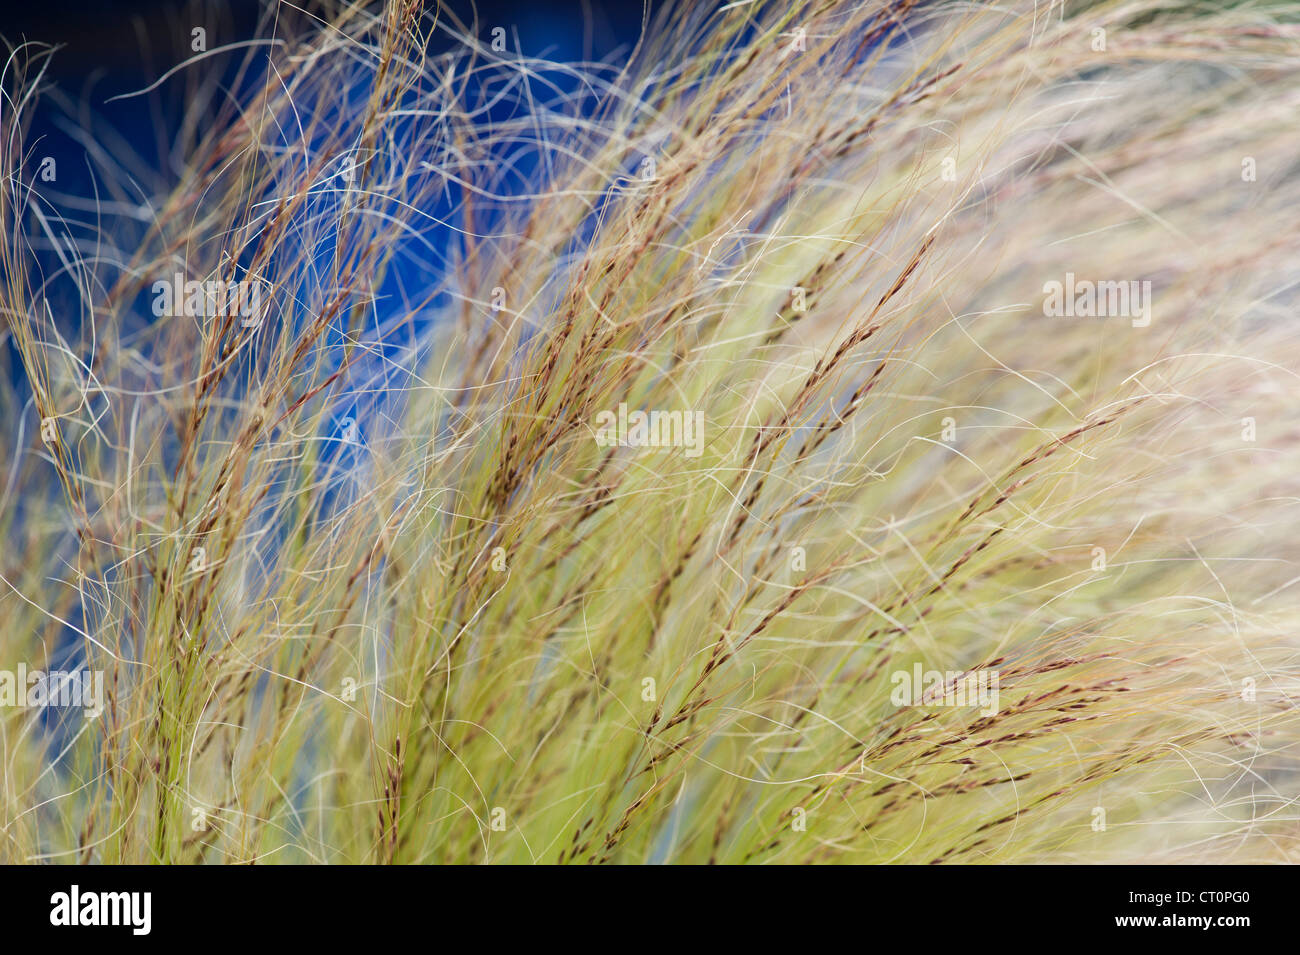 Stipa tenuissima. Mexican Feather grass and seed - Stock Image